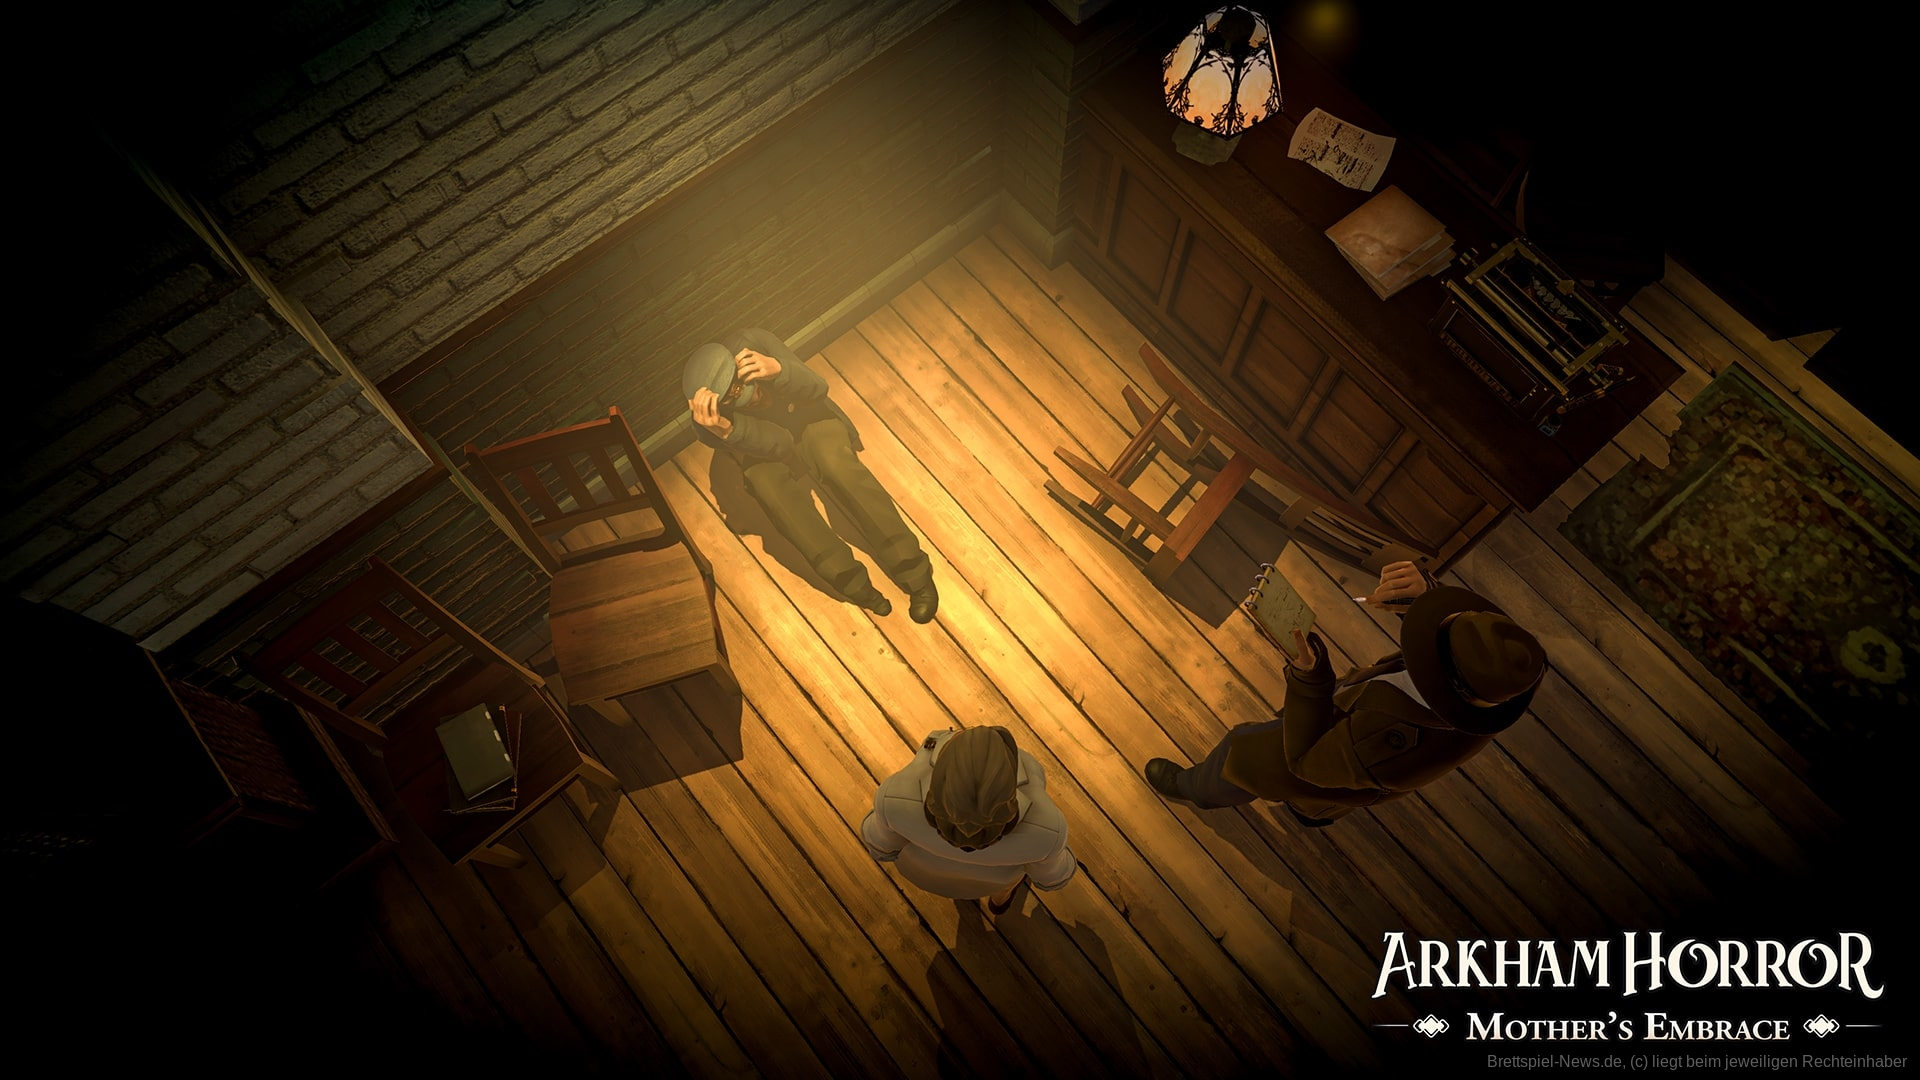 Arkham Horror Mothers Embrace screenshot 4